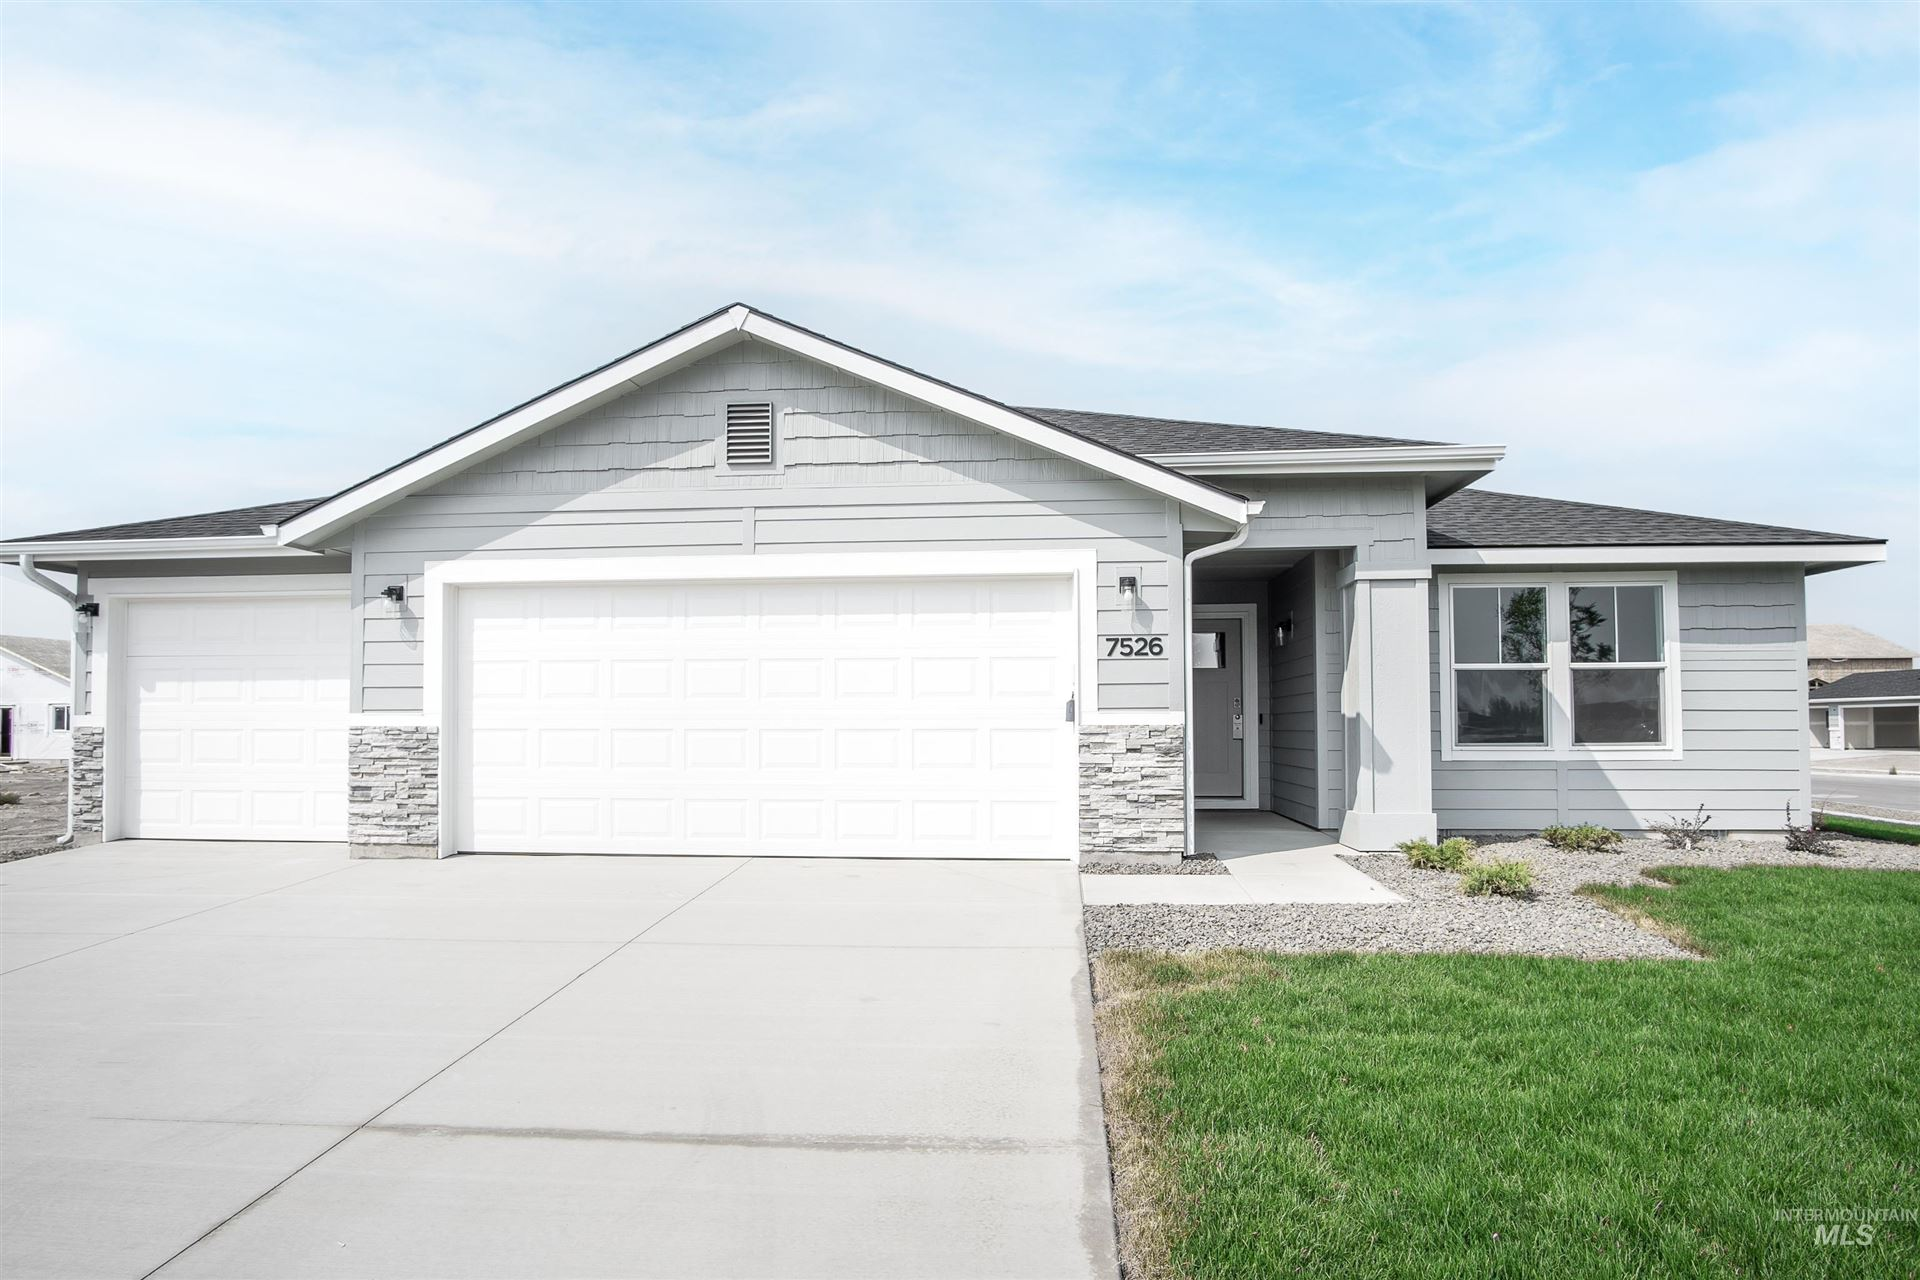 7526 E Toussand Dr., Nampa, ID 83687 - MLS#: 98814439